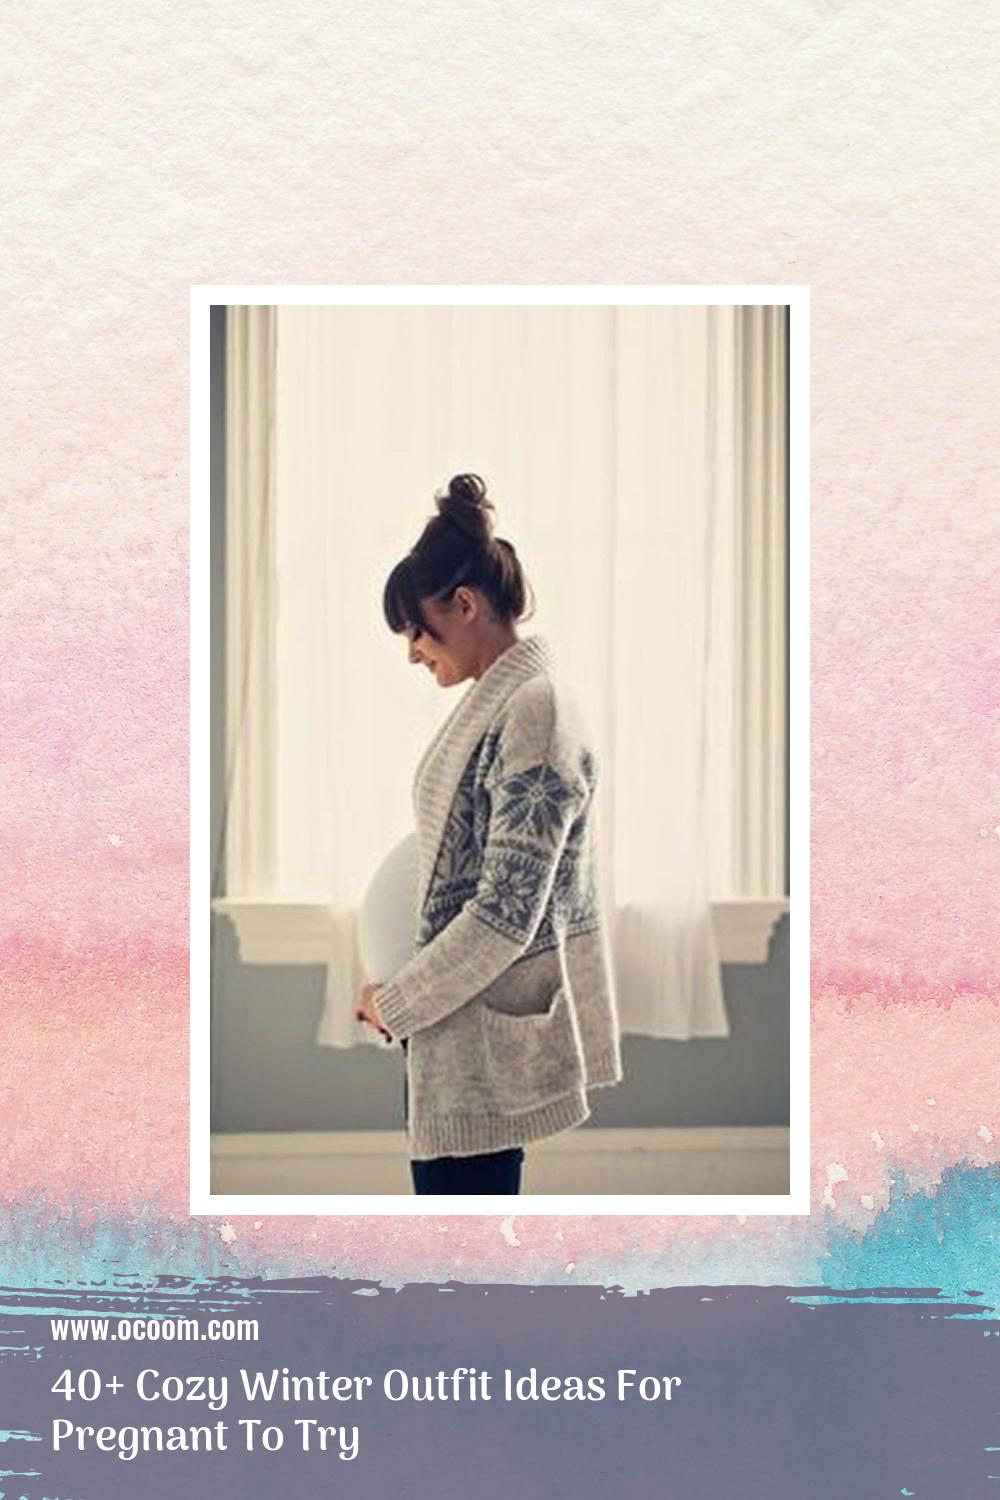 40+ Cozy Winter Outfit Ideas For Pregnant To Try 20